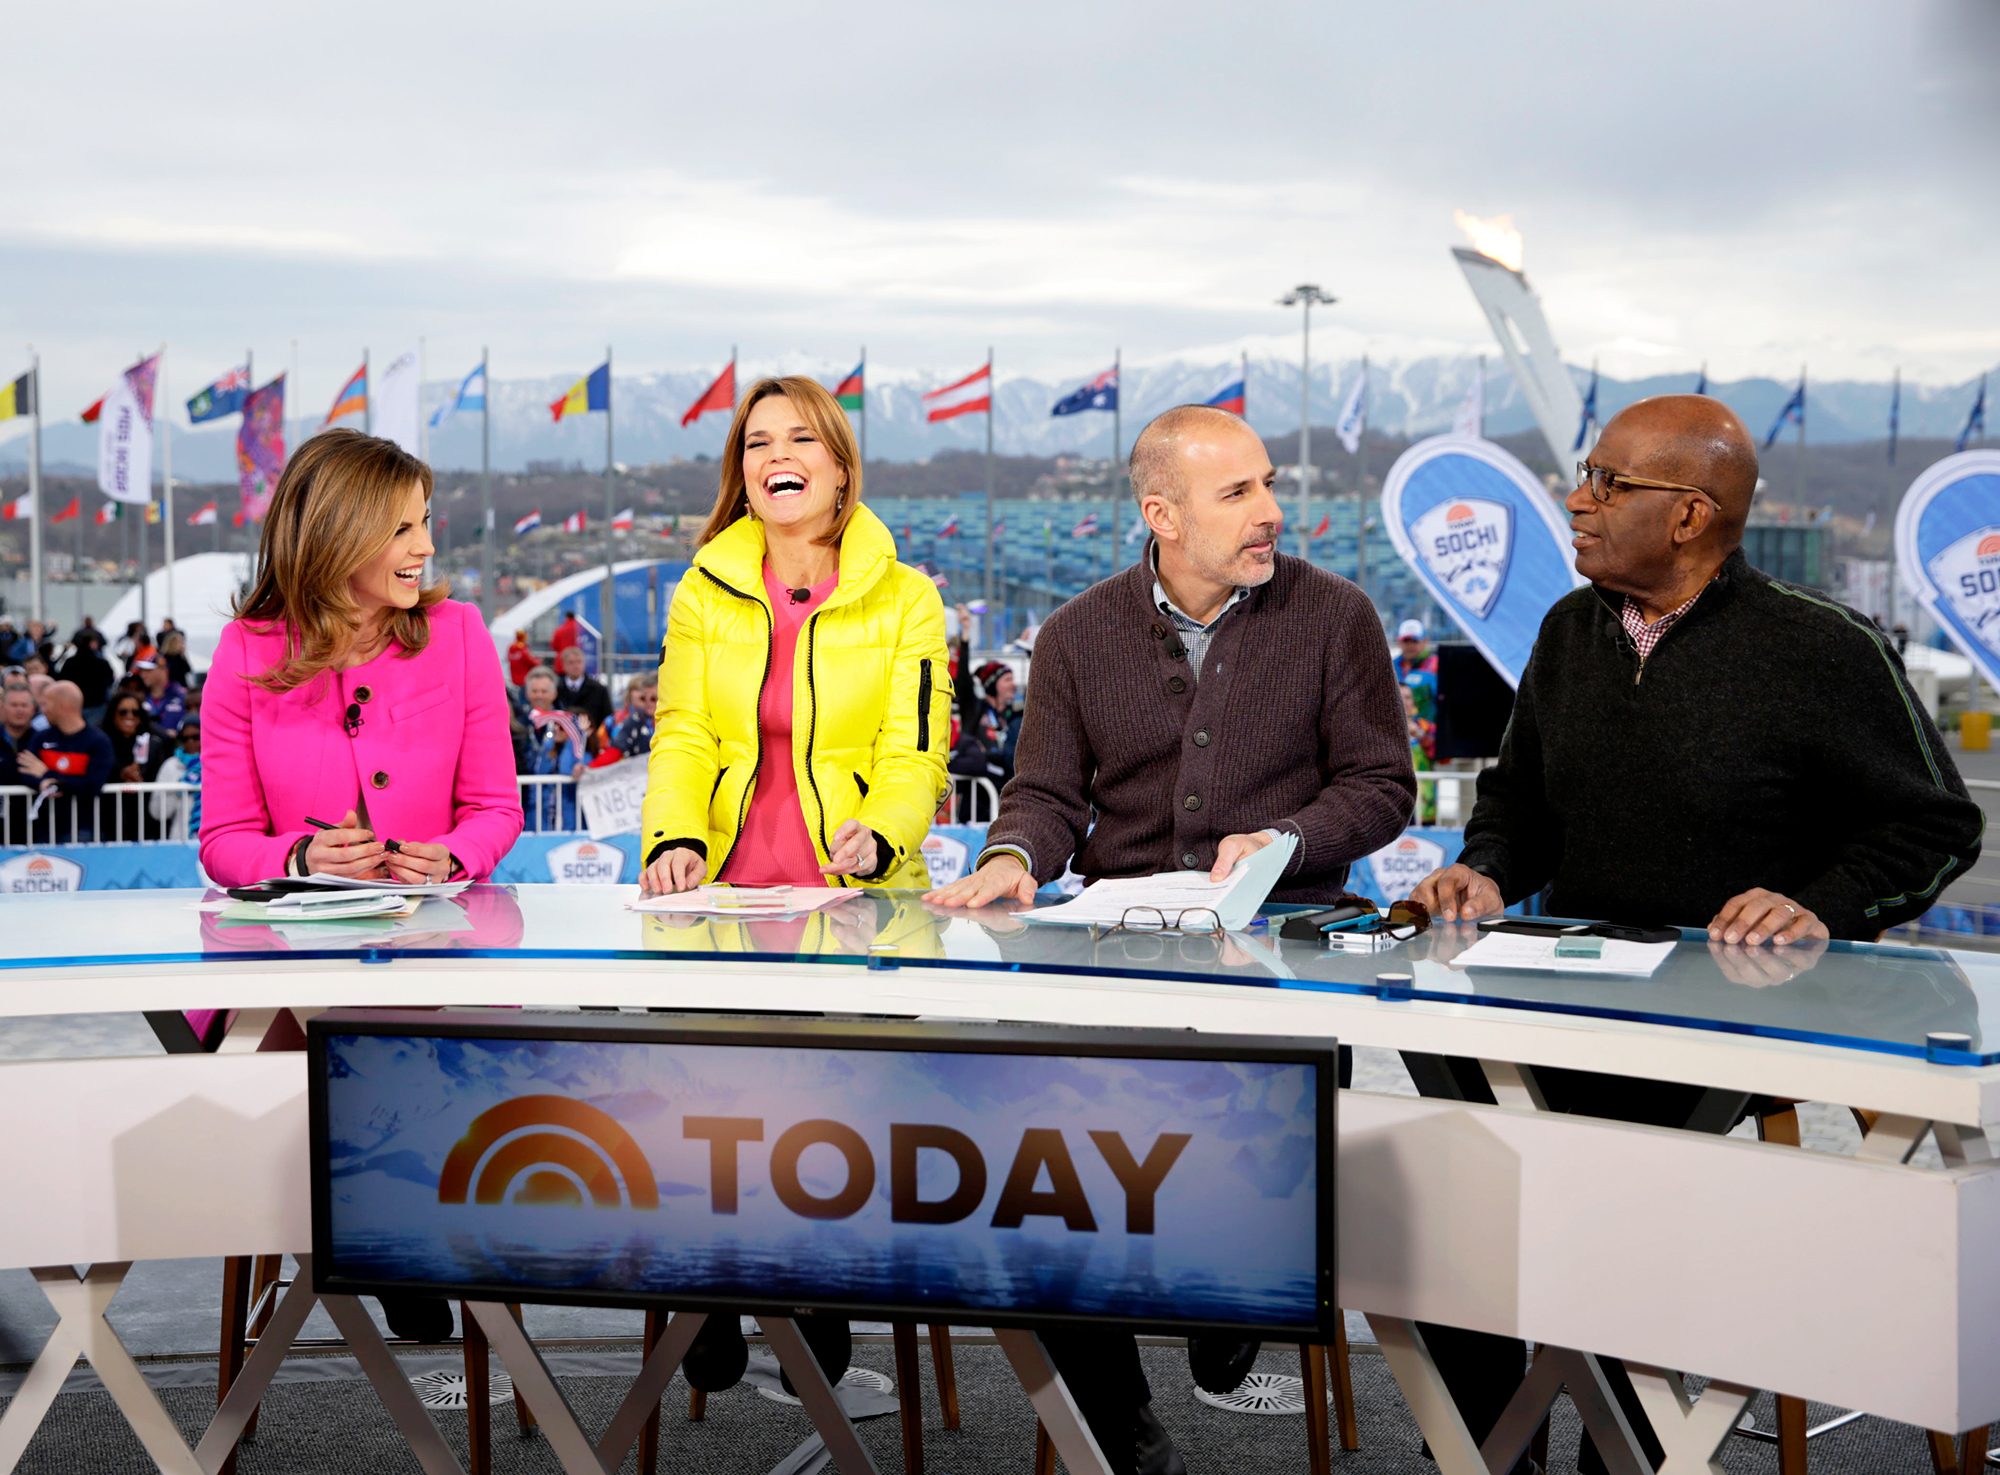 Natalie Morales, Savannah Guthrie, Matt Lauer and Al Roker during the NBC 'Today' show at the the Sochi 2014 Winter Olympics in Sochi, Russia.